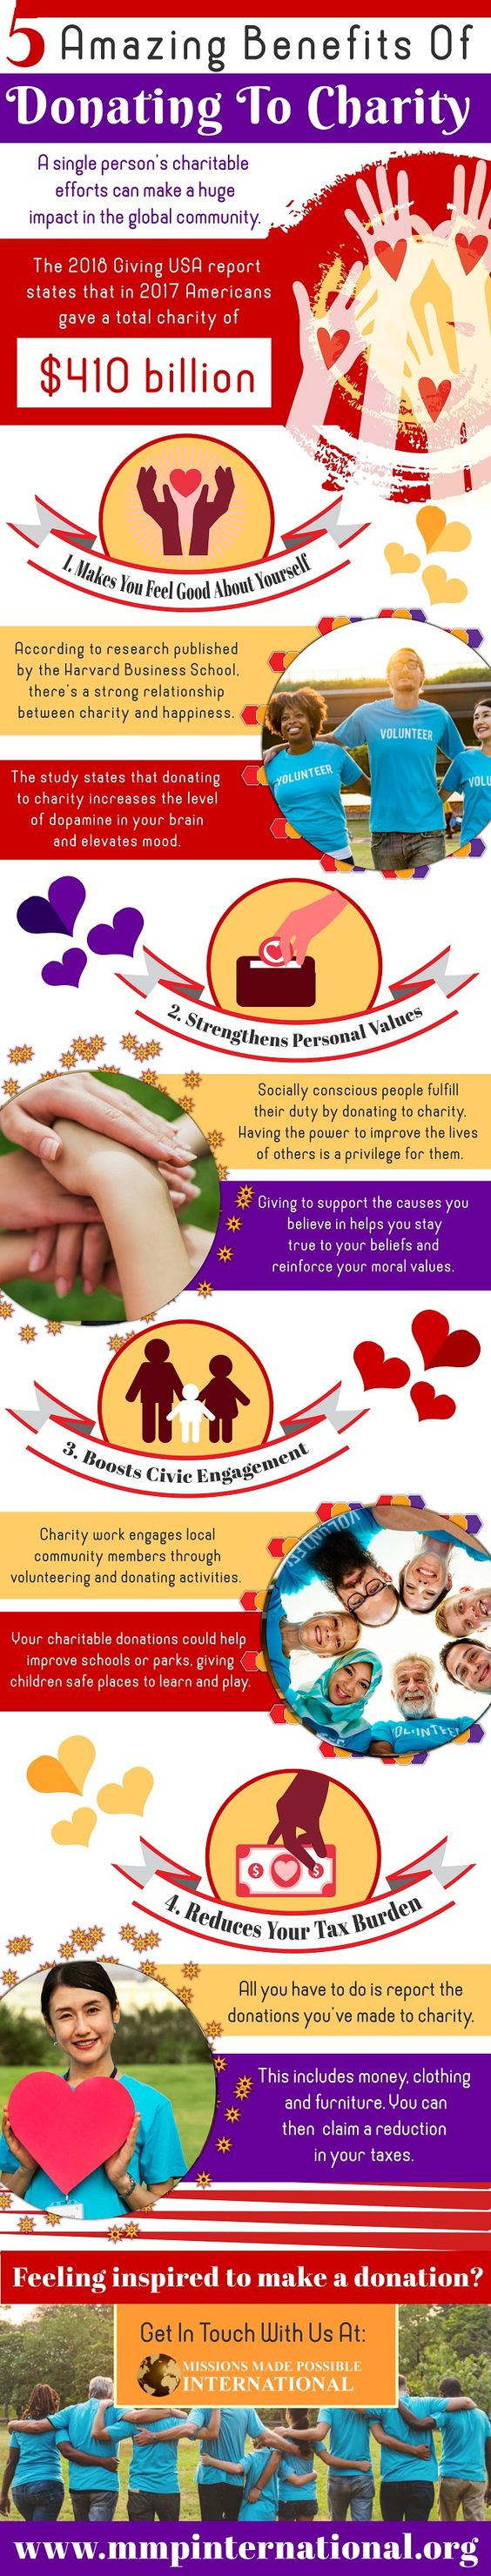 5 Amazing Benefits Of Donating To Charity